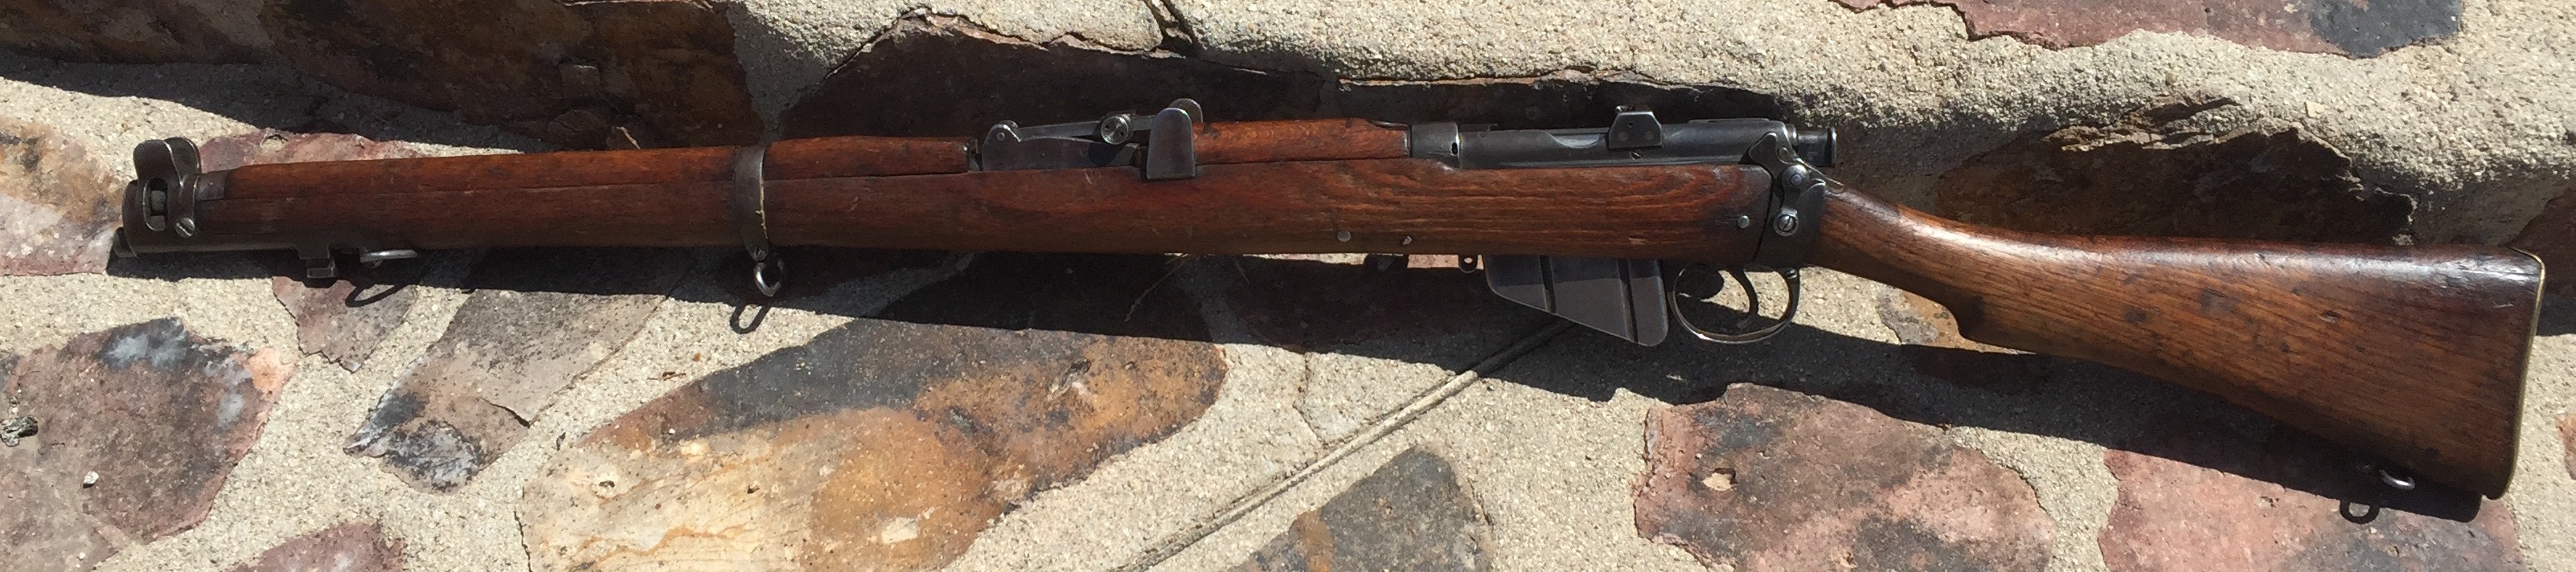 Rifle Sale! SMLE, MAS-36, Spanish Mauser – Forgotten Weapons